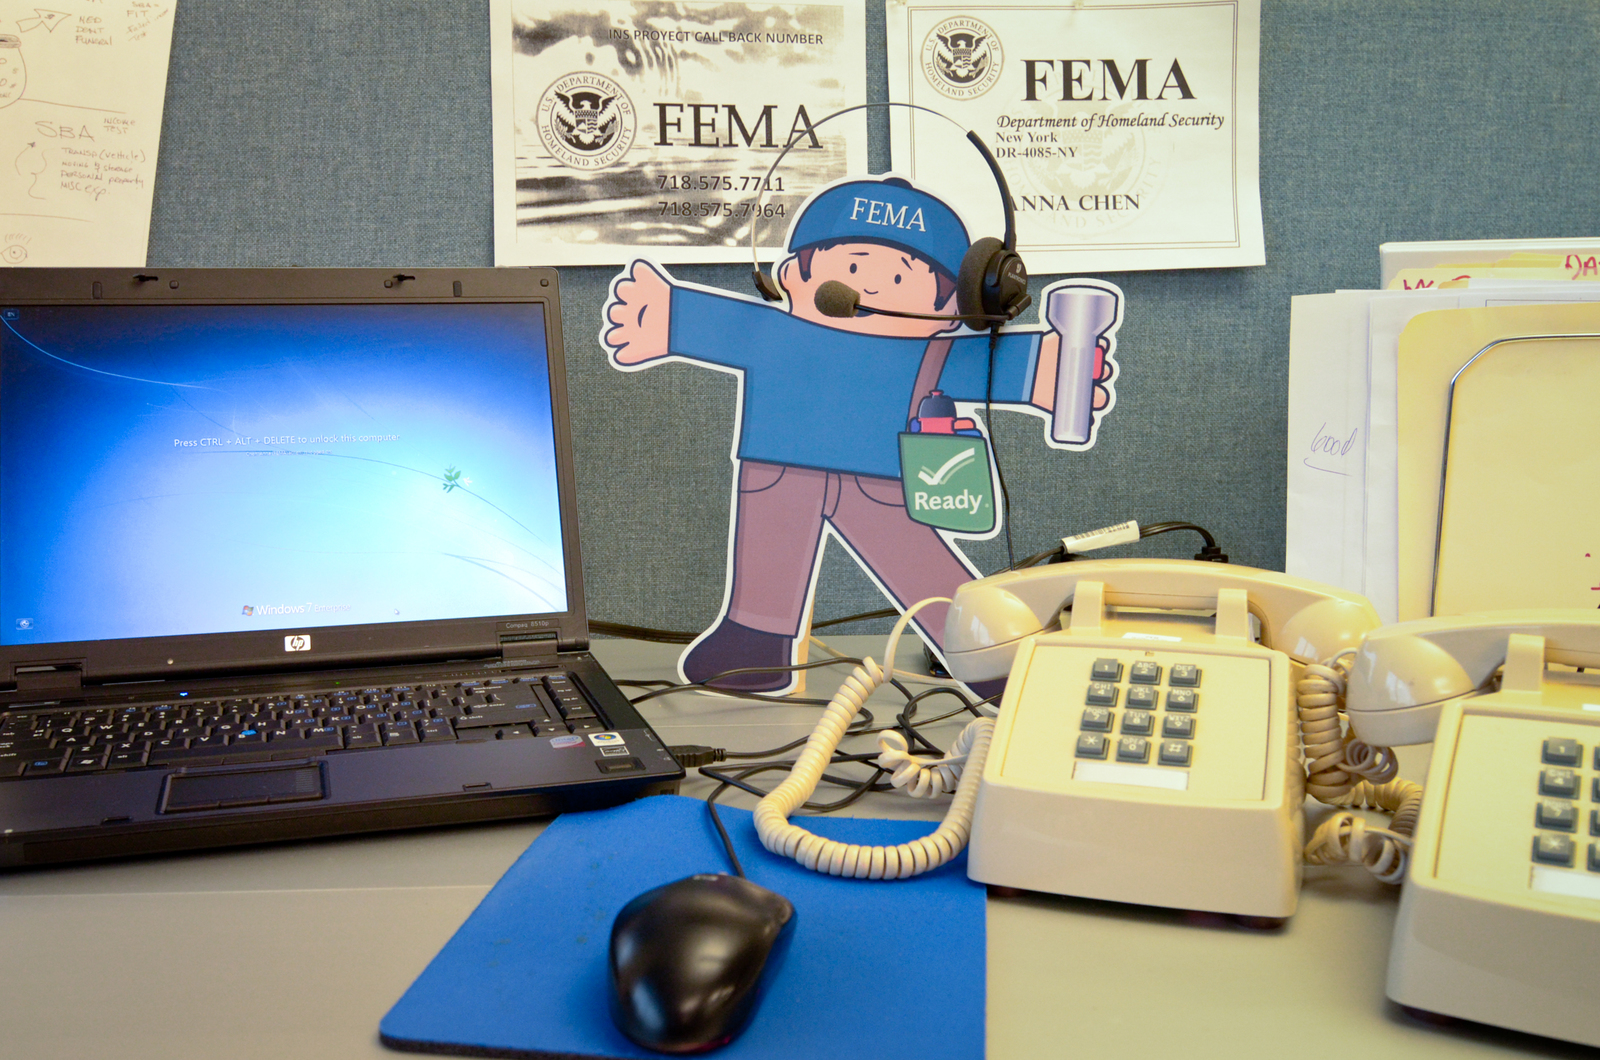 Queens, N.Y., Jan. 4, 2013 -- Flat Stella and Flat Stanley visit the FEMA Joint Field Office (JFO) in Queens, N.Y. At the JFO, FEMA works with its partners to ensure that disaster survivors are receiving assistance that will help them begin to recover. Andre R. Aragon/FEMA